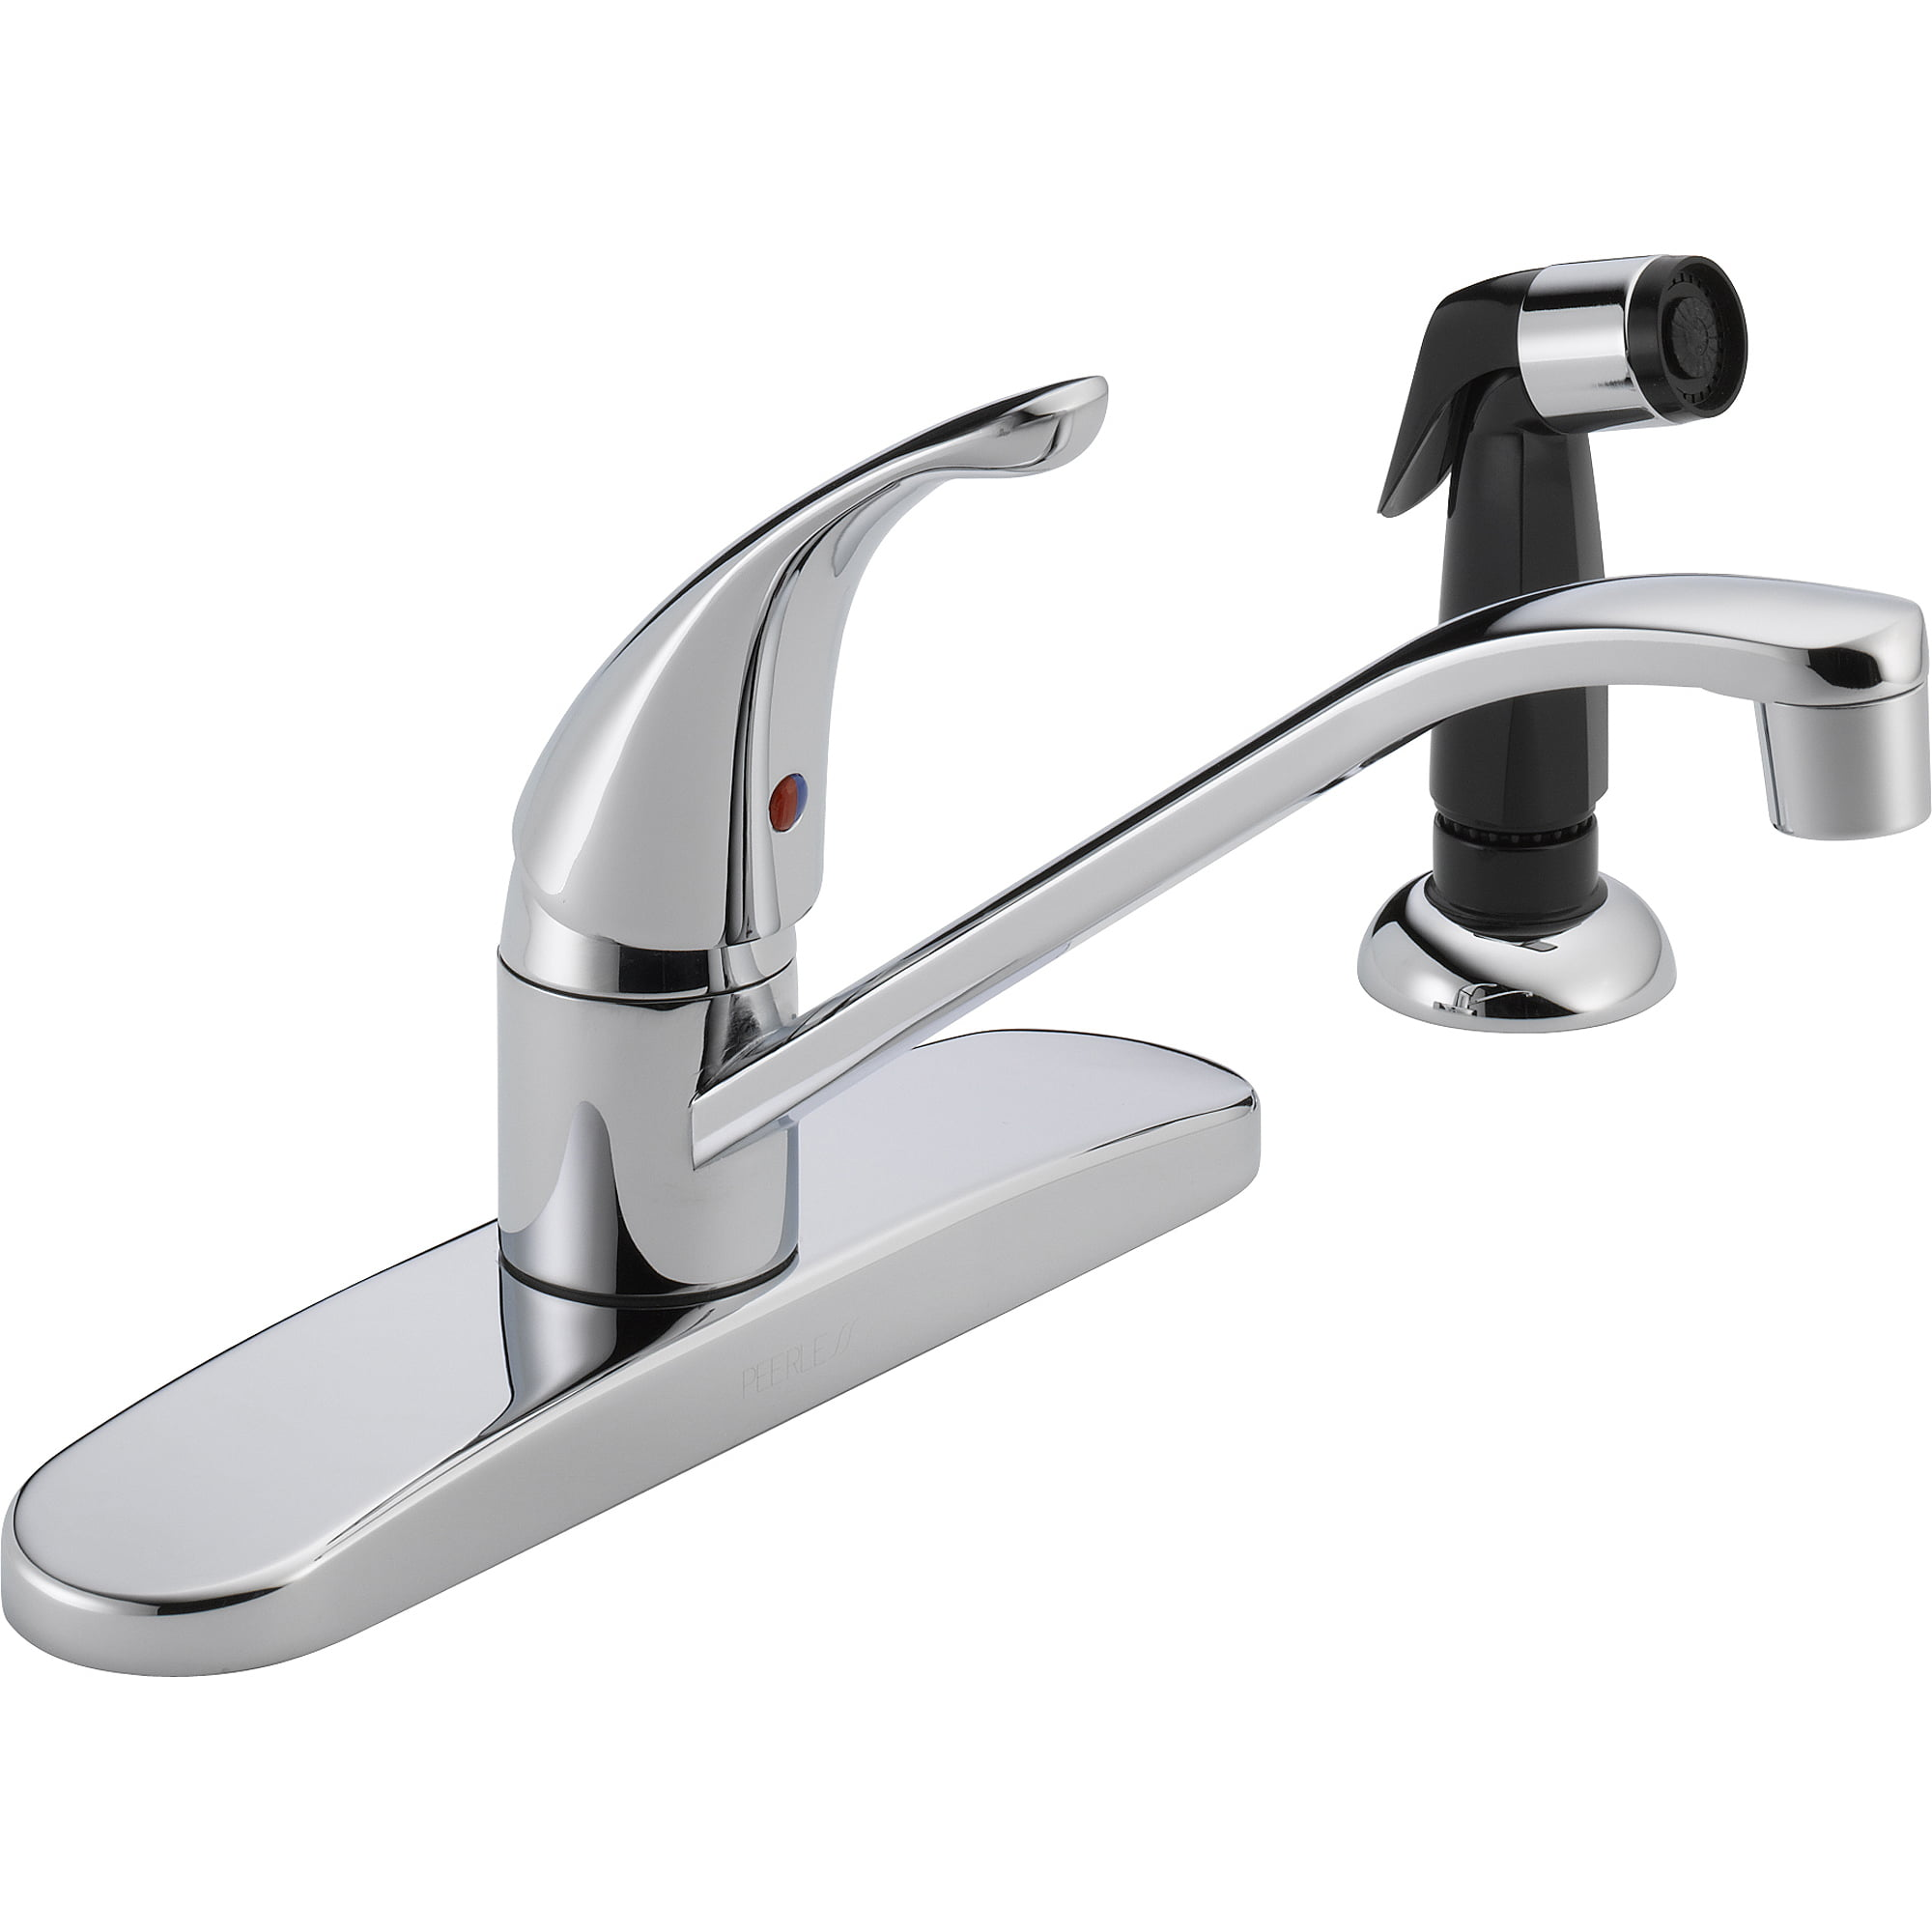 Amazing Peerless Single Handle Kitchen Faucet With Side Sprayer, Chrome, #P115LF W    Walmart.com